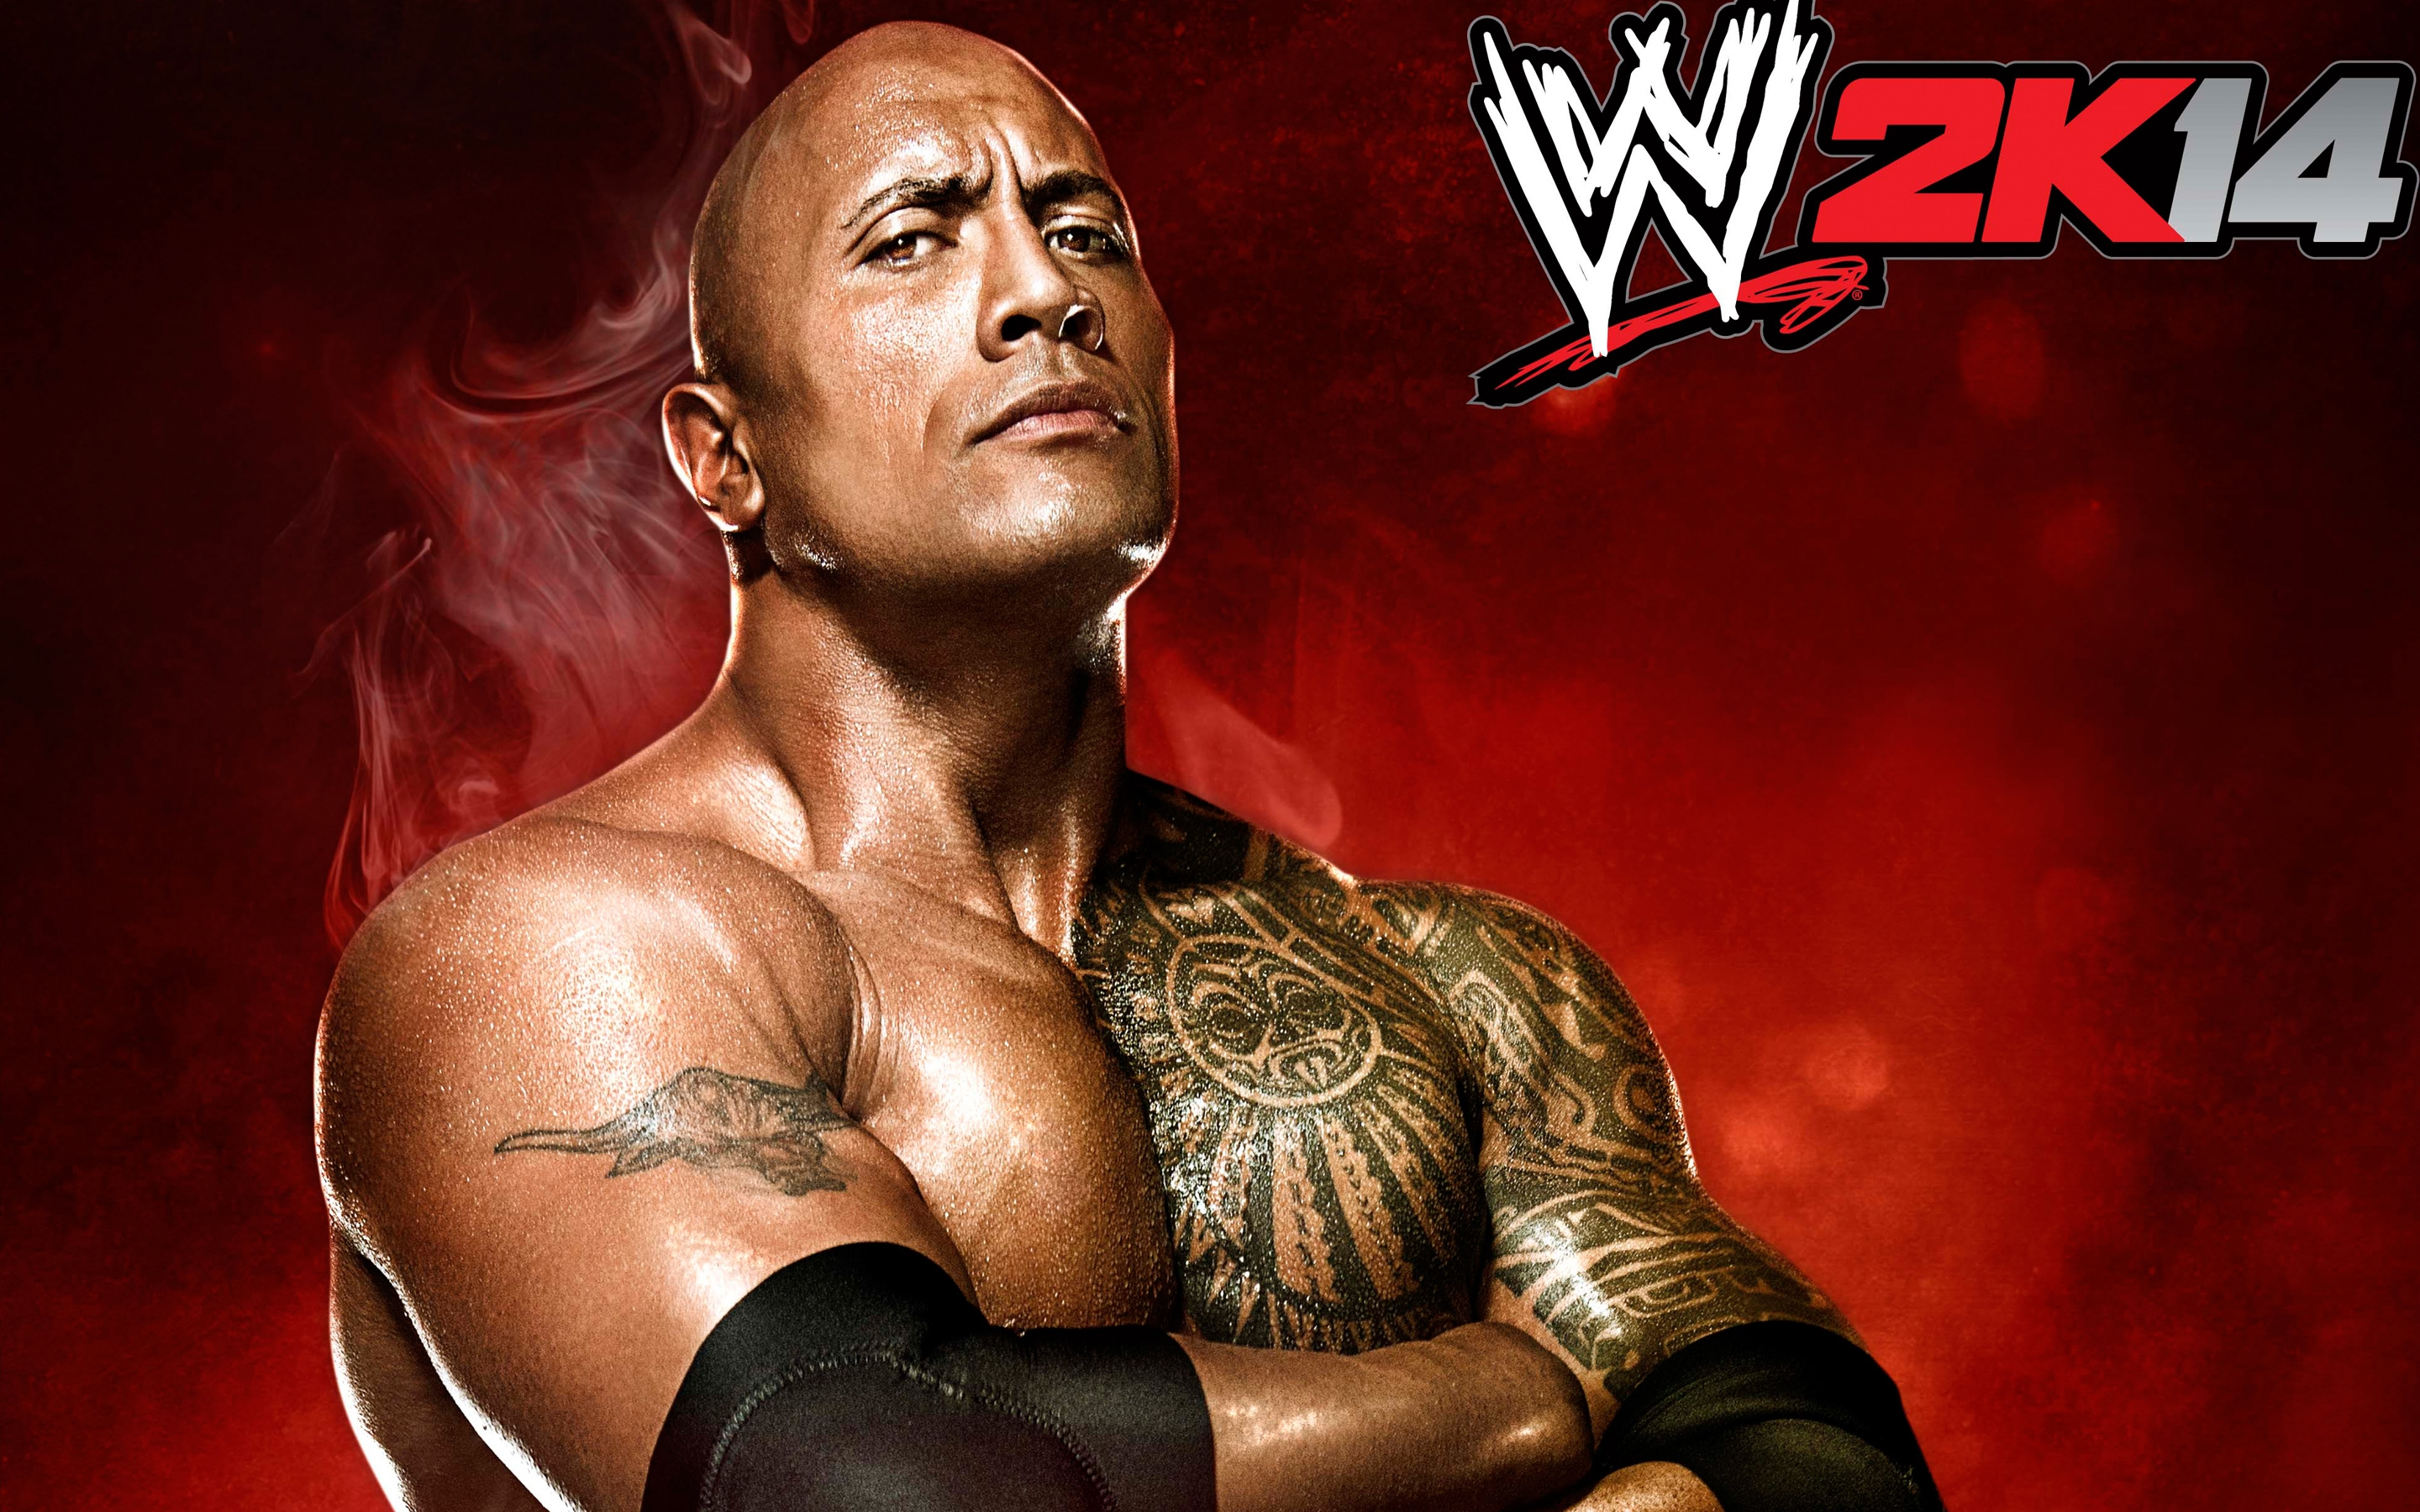 the rock wwe super star free hd wallpaper